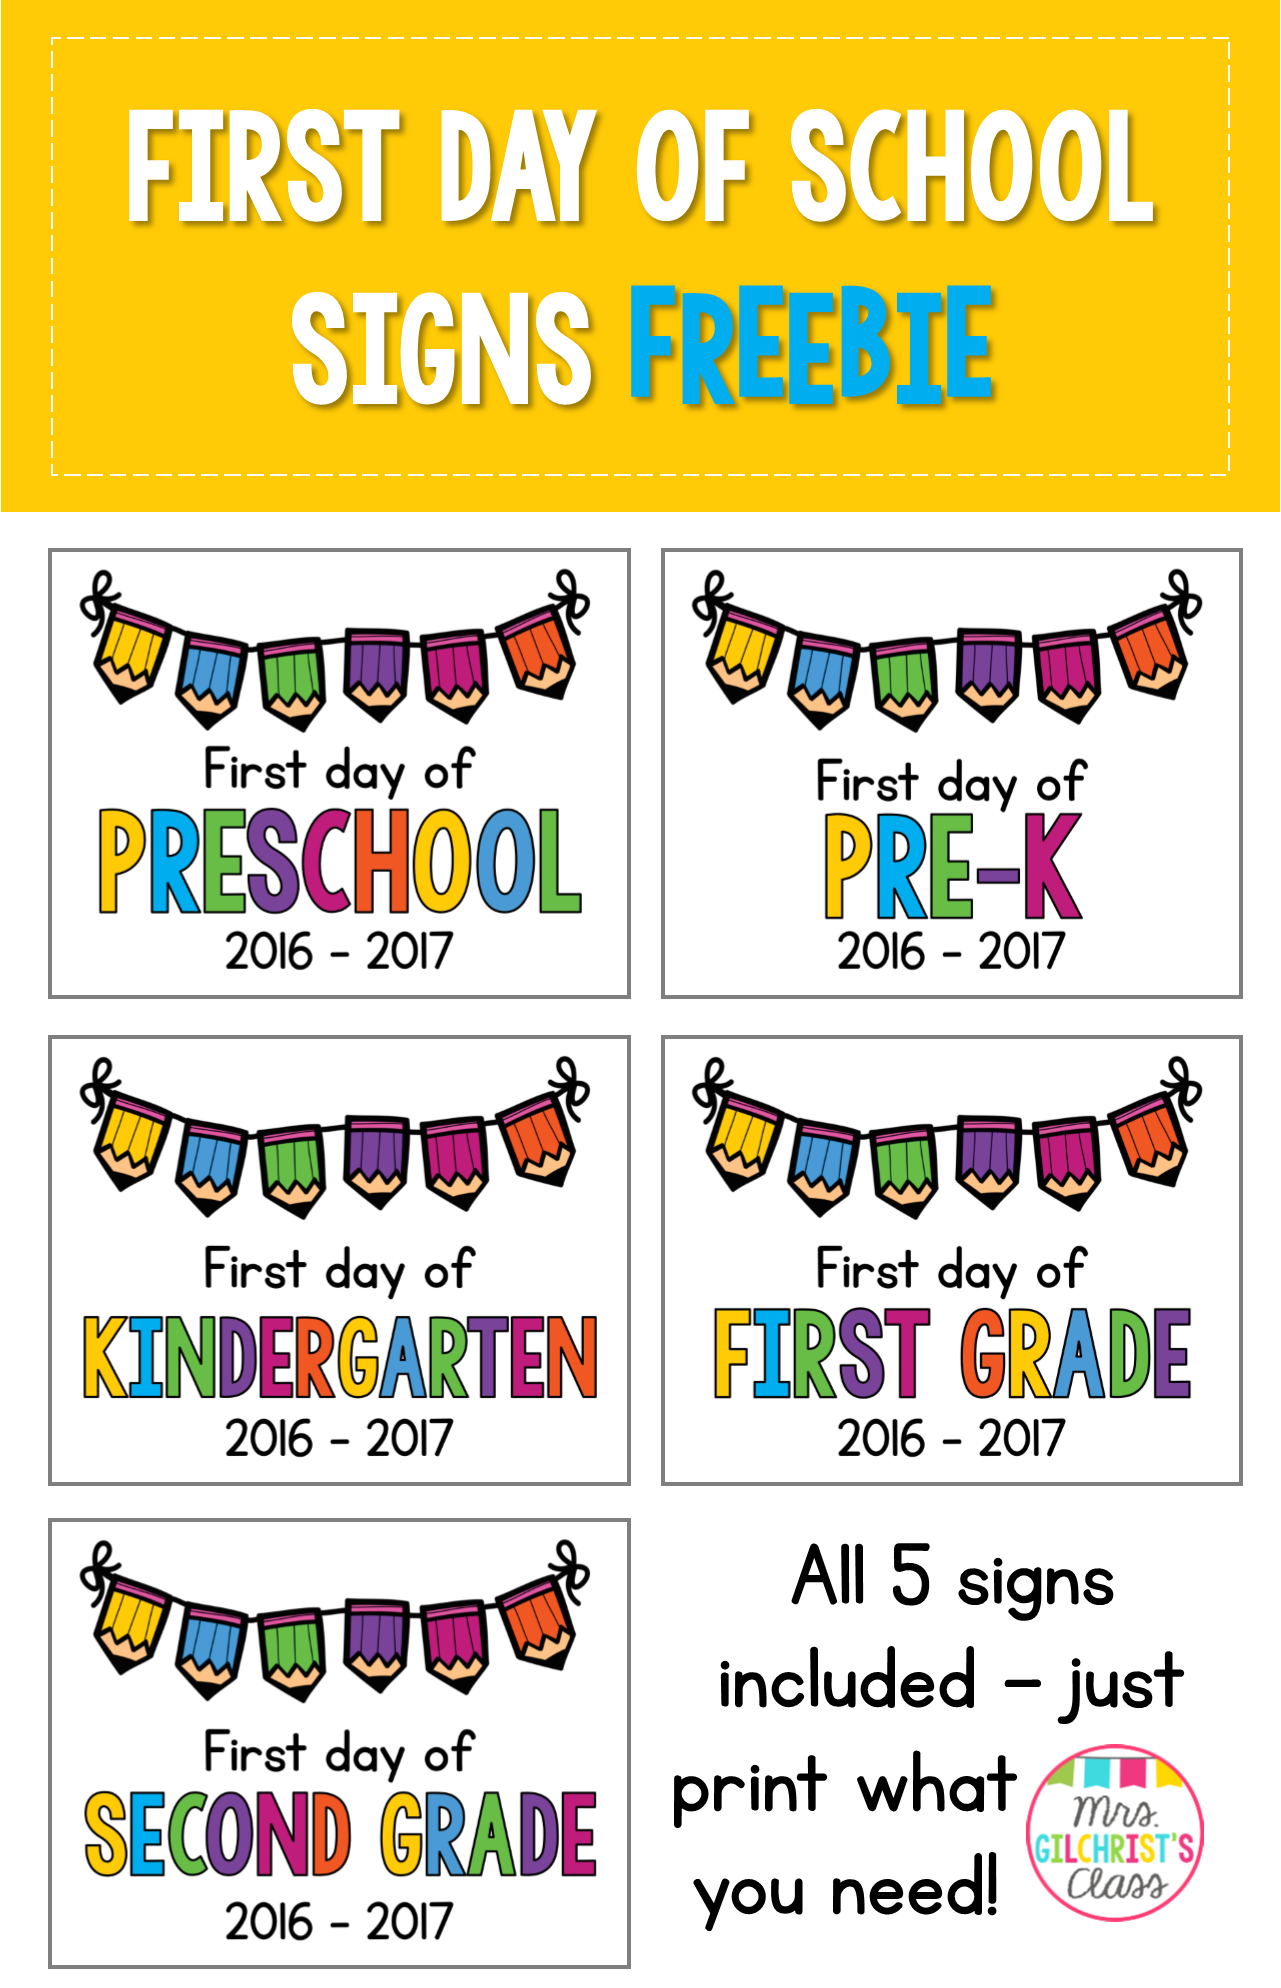 first day of school printables for second grade amazing blends fun reading worksheets for 2nd. Black Bedroom Furniture Sets. Home Design Ideas